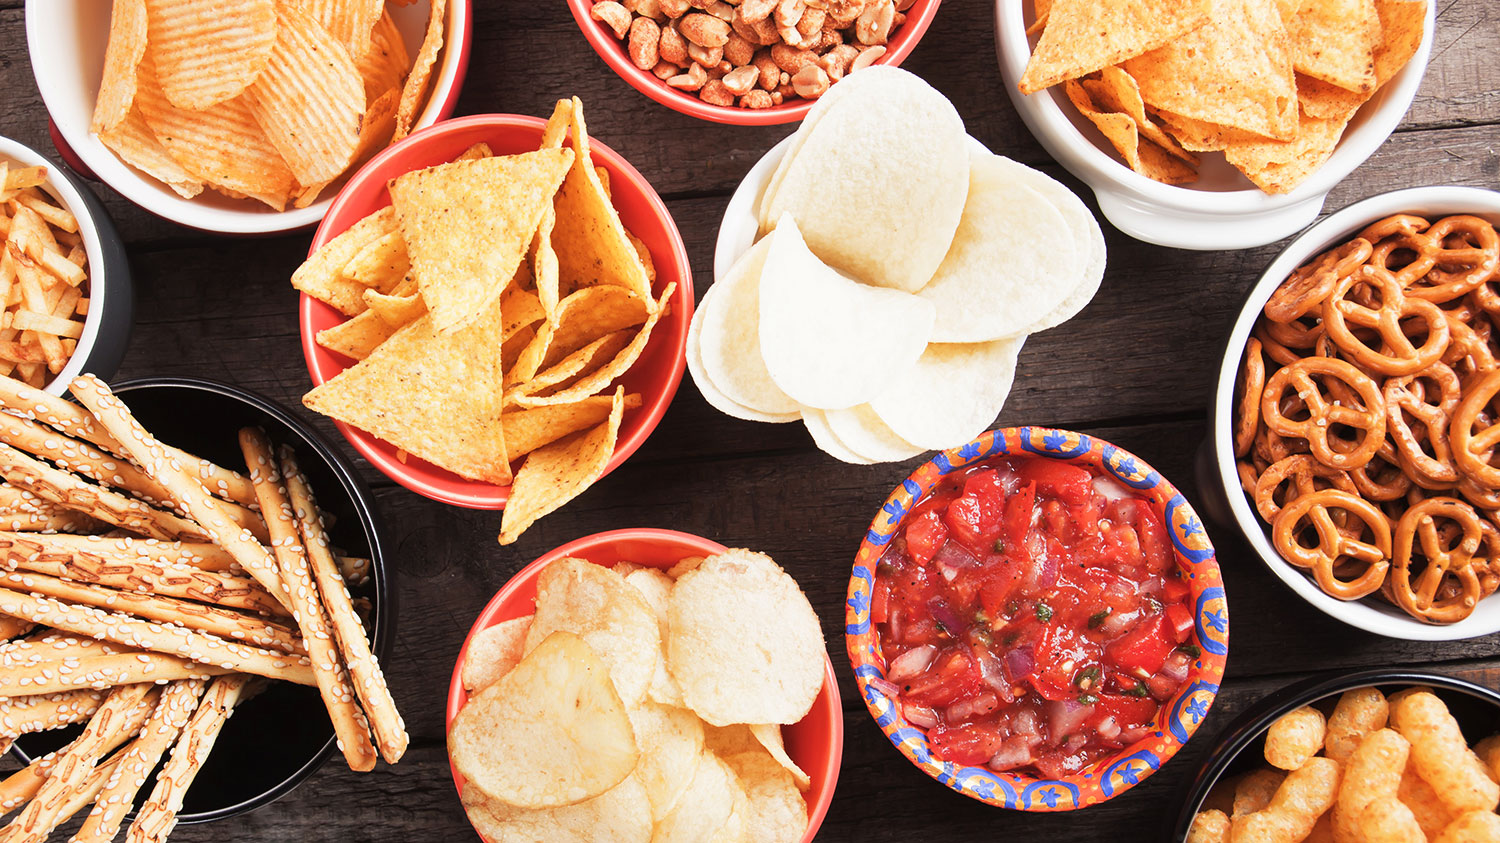 Study Shows Salty Foods Don't Make You Thirsty After All